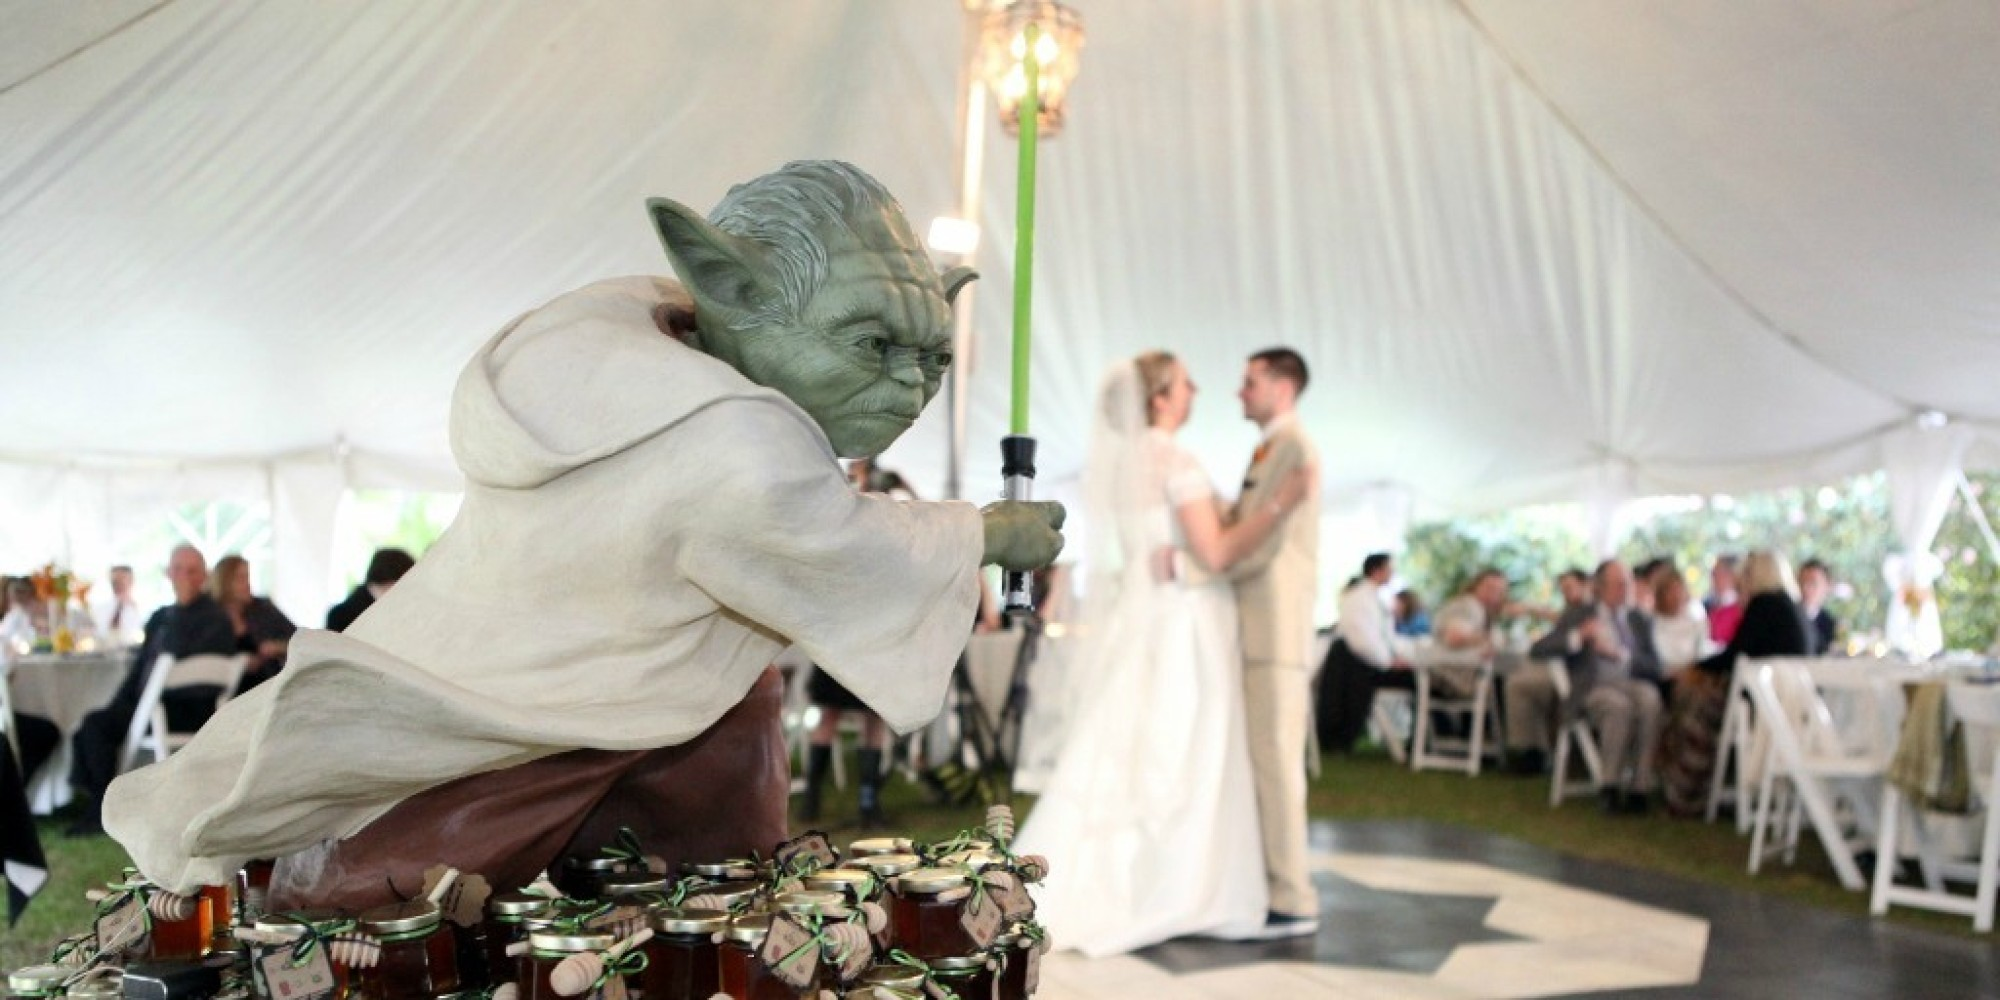 It\'s Official, This Is The Nerdiest Wedding Ever | HuffPost